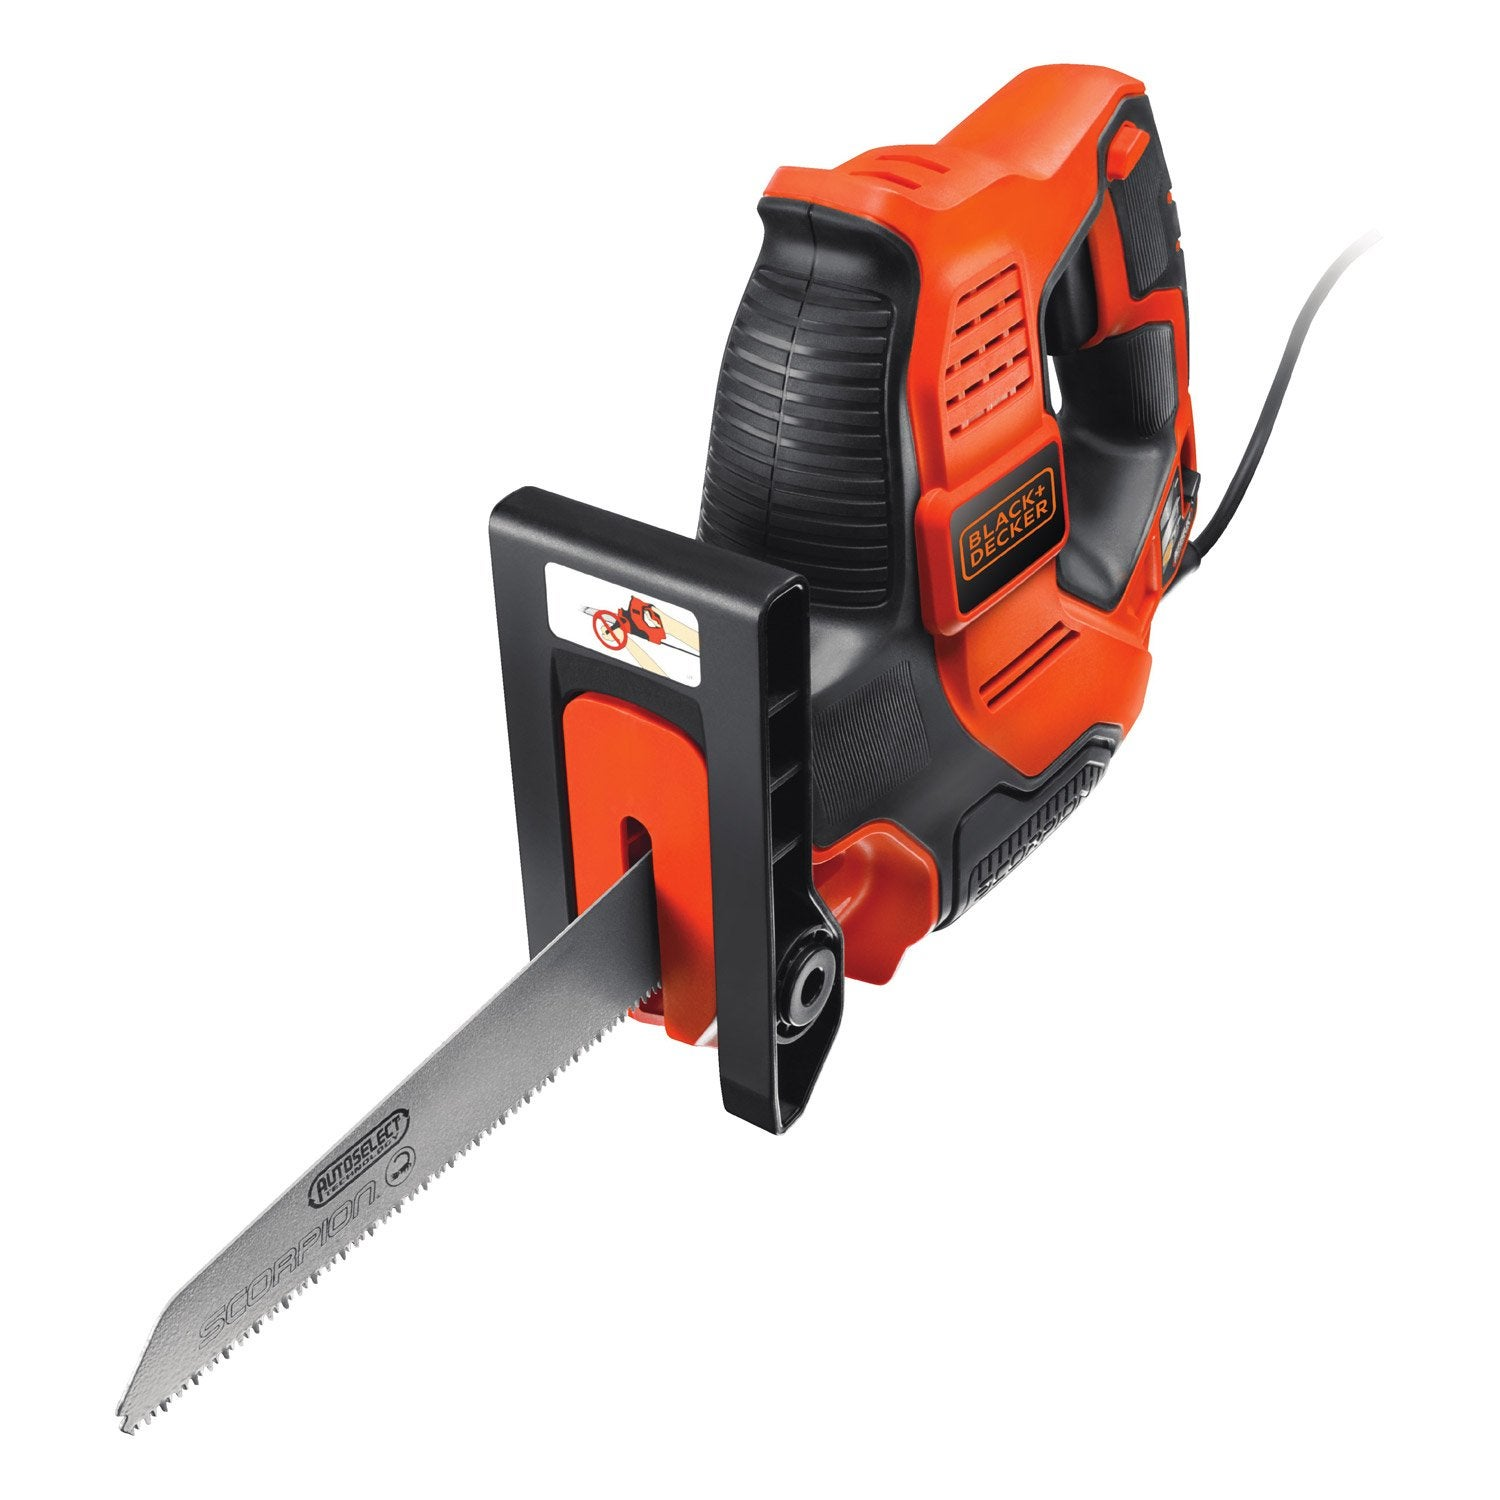 Scie sabre black decker rs890k scorpion 500 w leroy merlin - Decapeur thermique black et decker ...